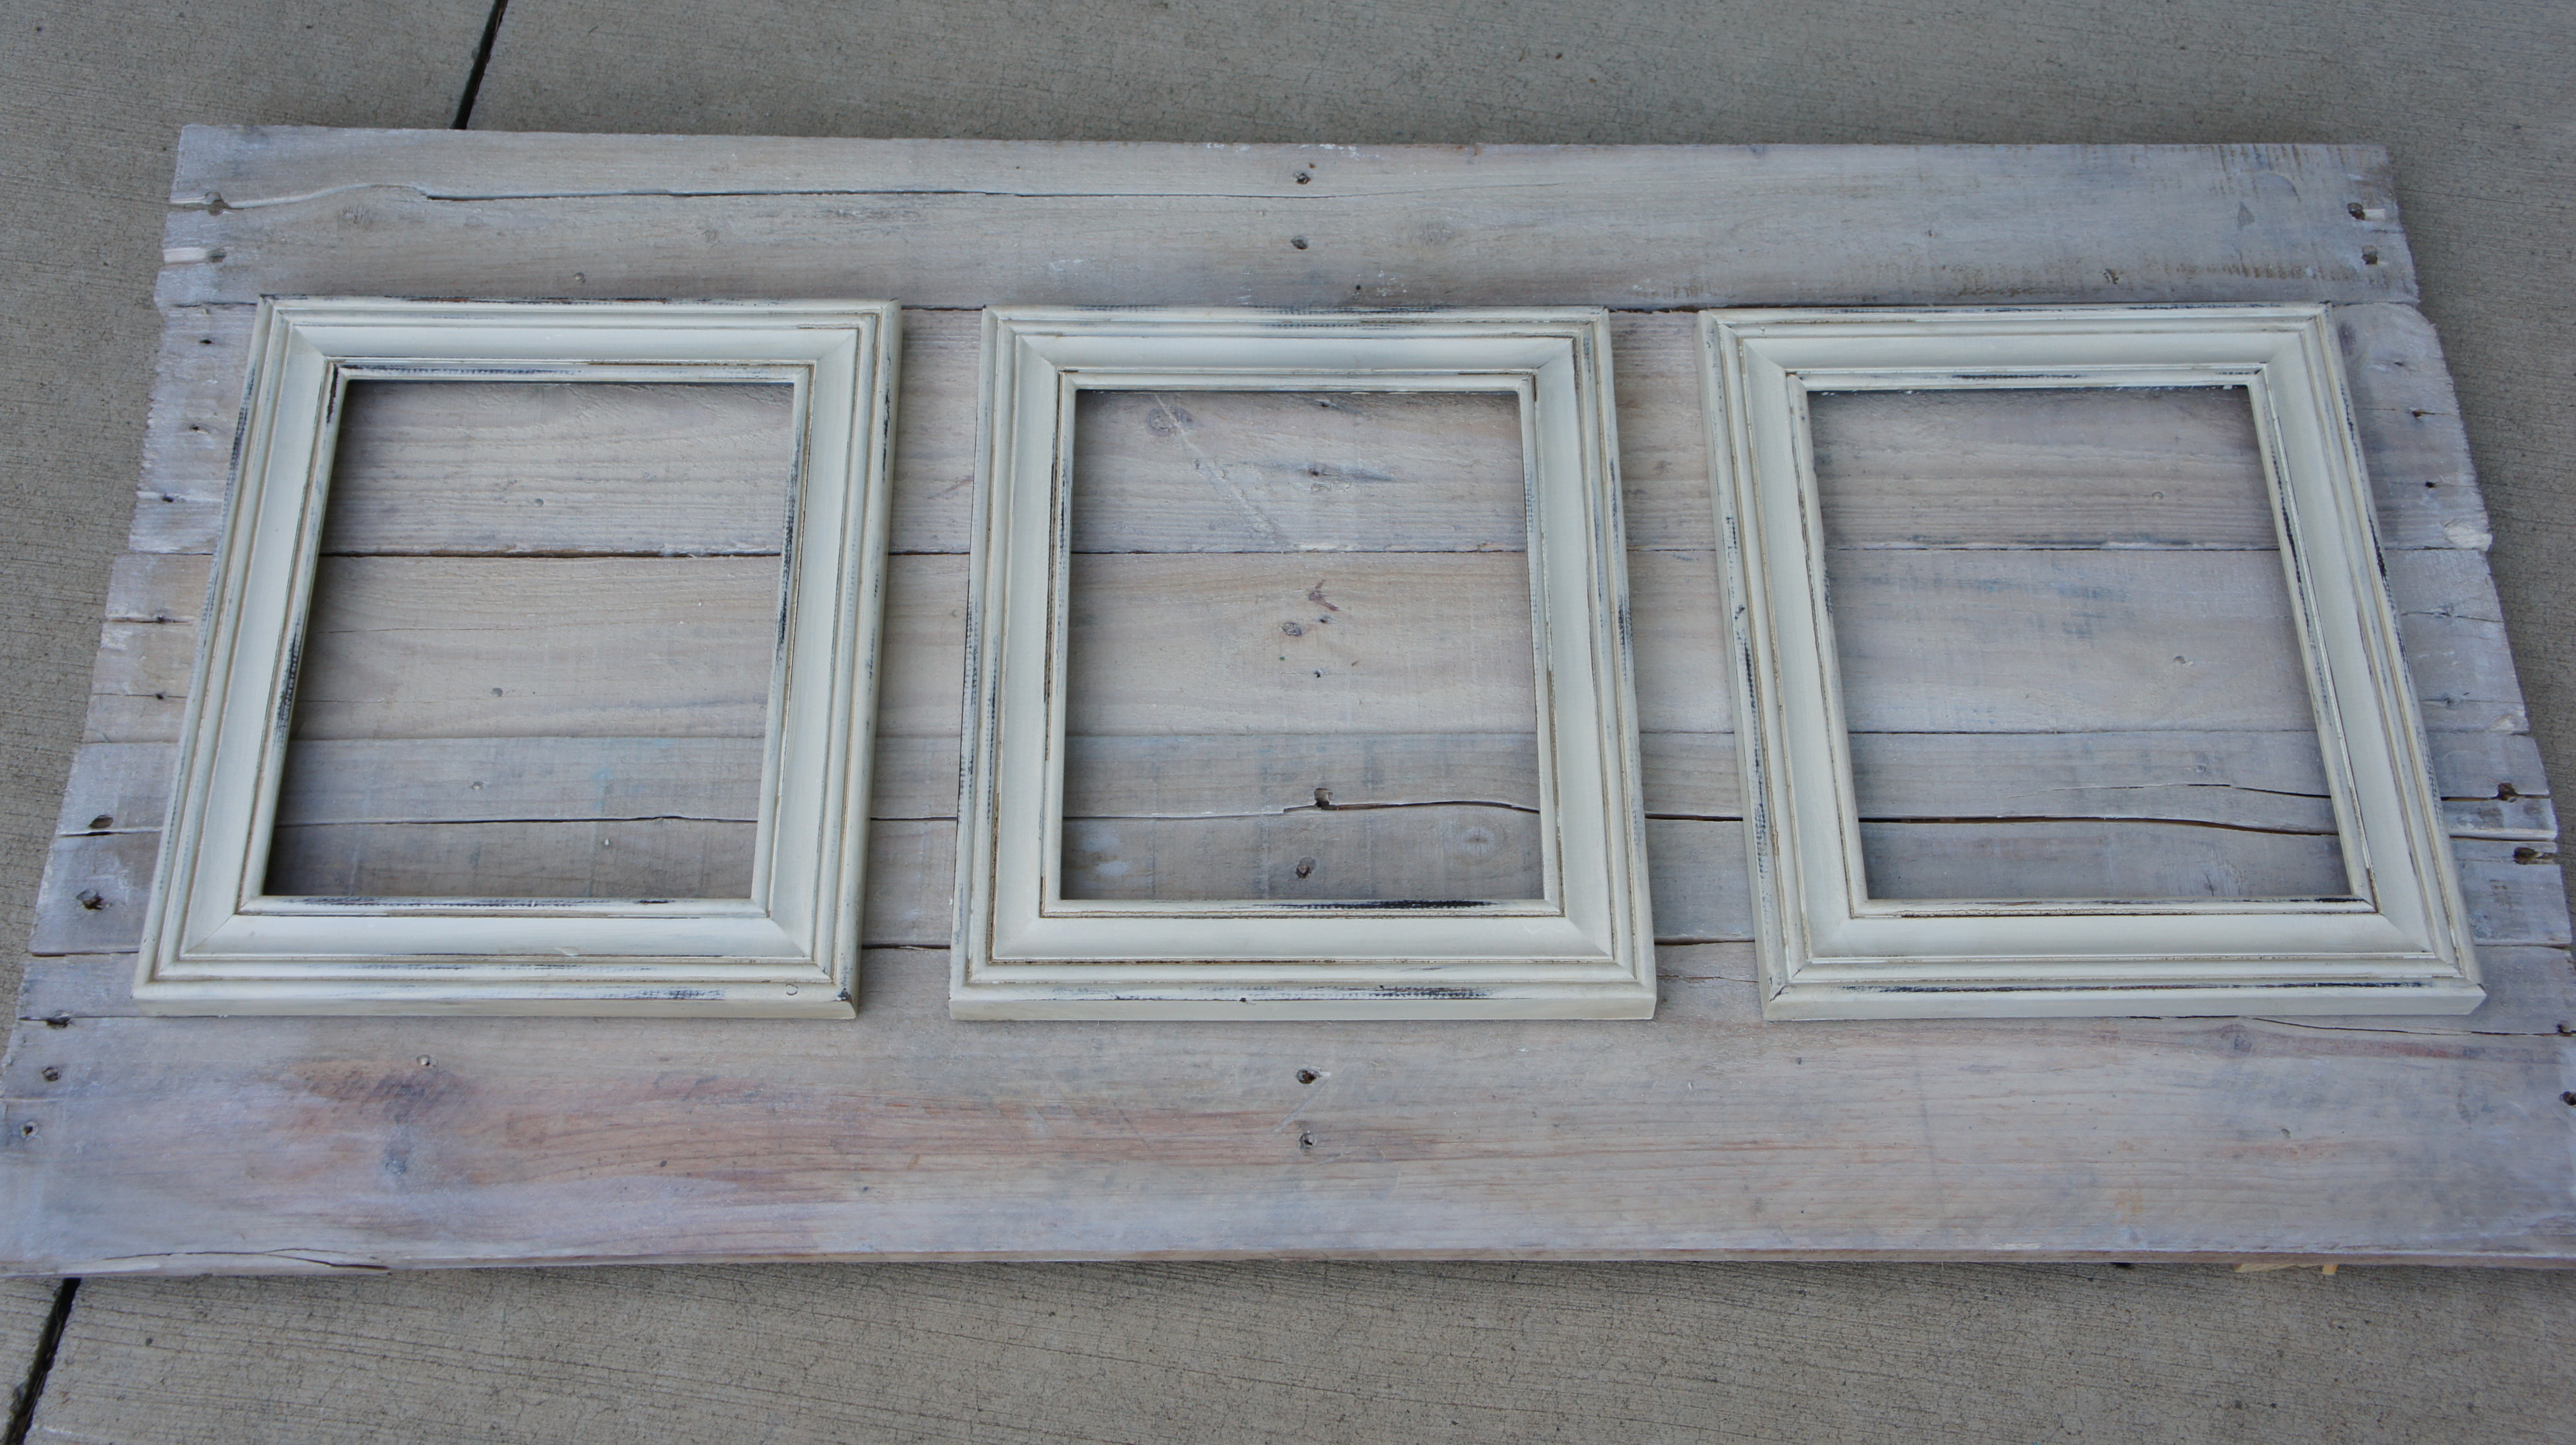 Beautiful How To Make Wooden Picture Frames Look Old, Plans For Shaker Cabinet .